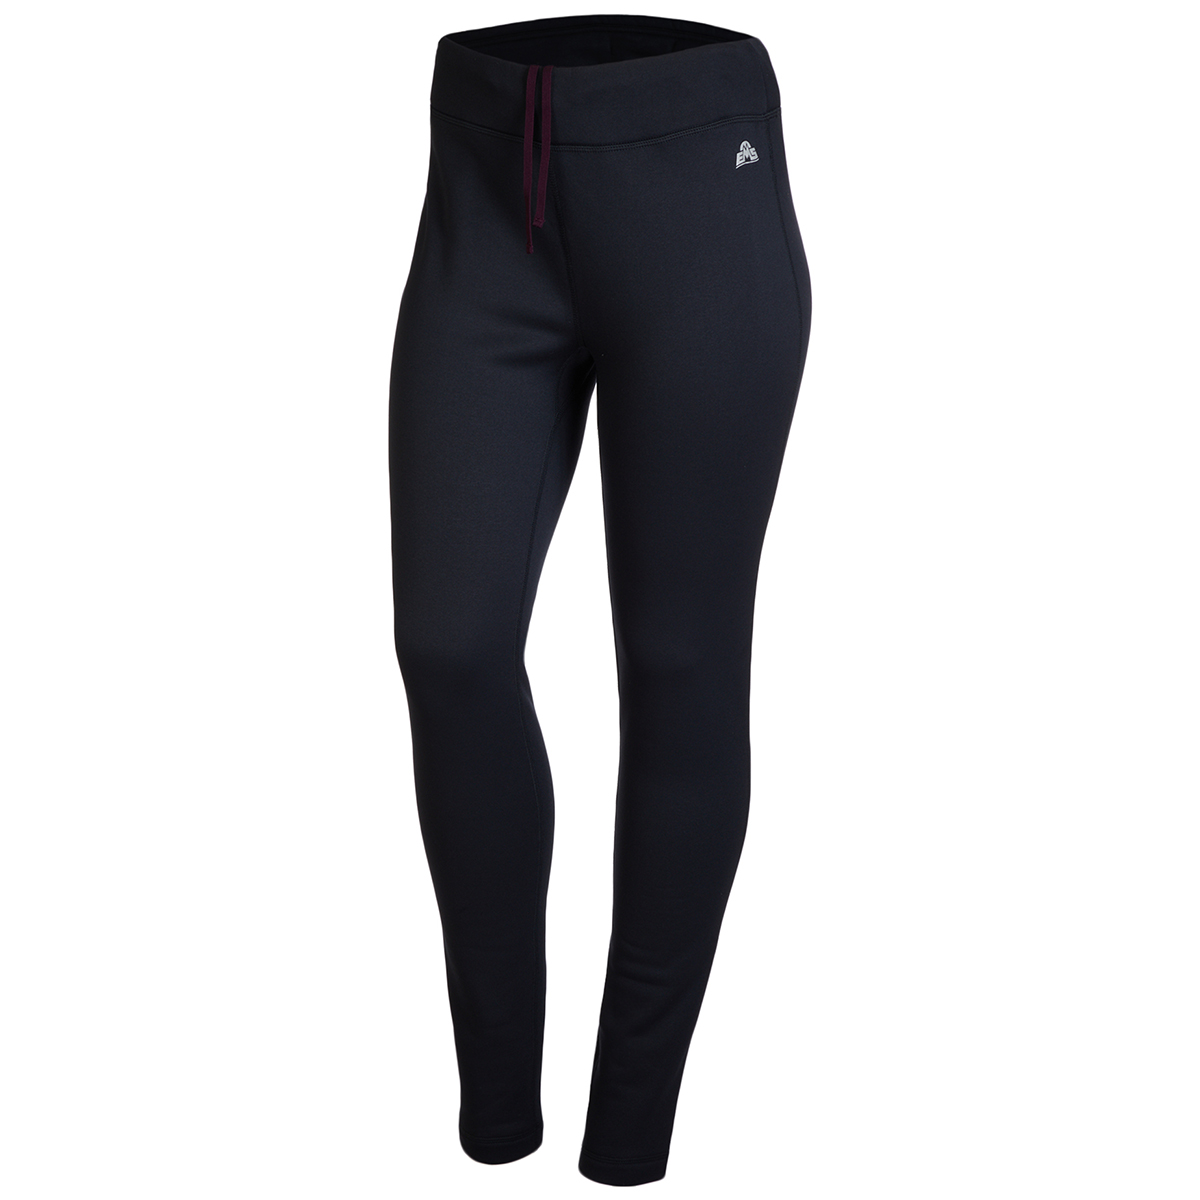 Ems Women's Equinox Stretch Ascent Tights - Black, M